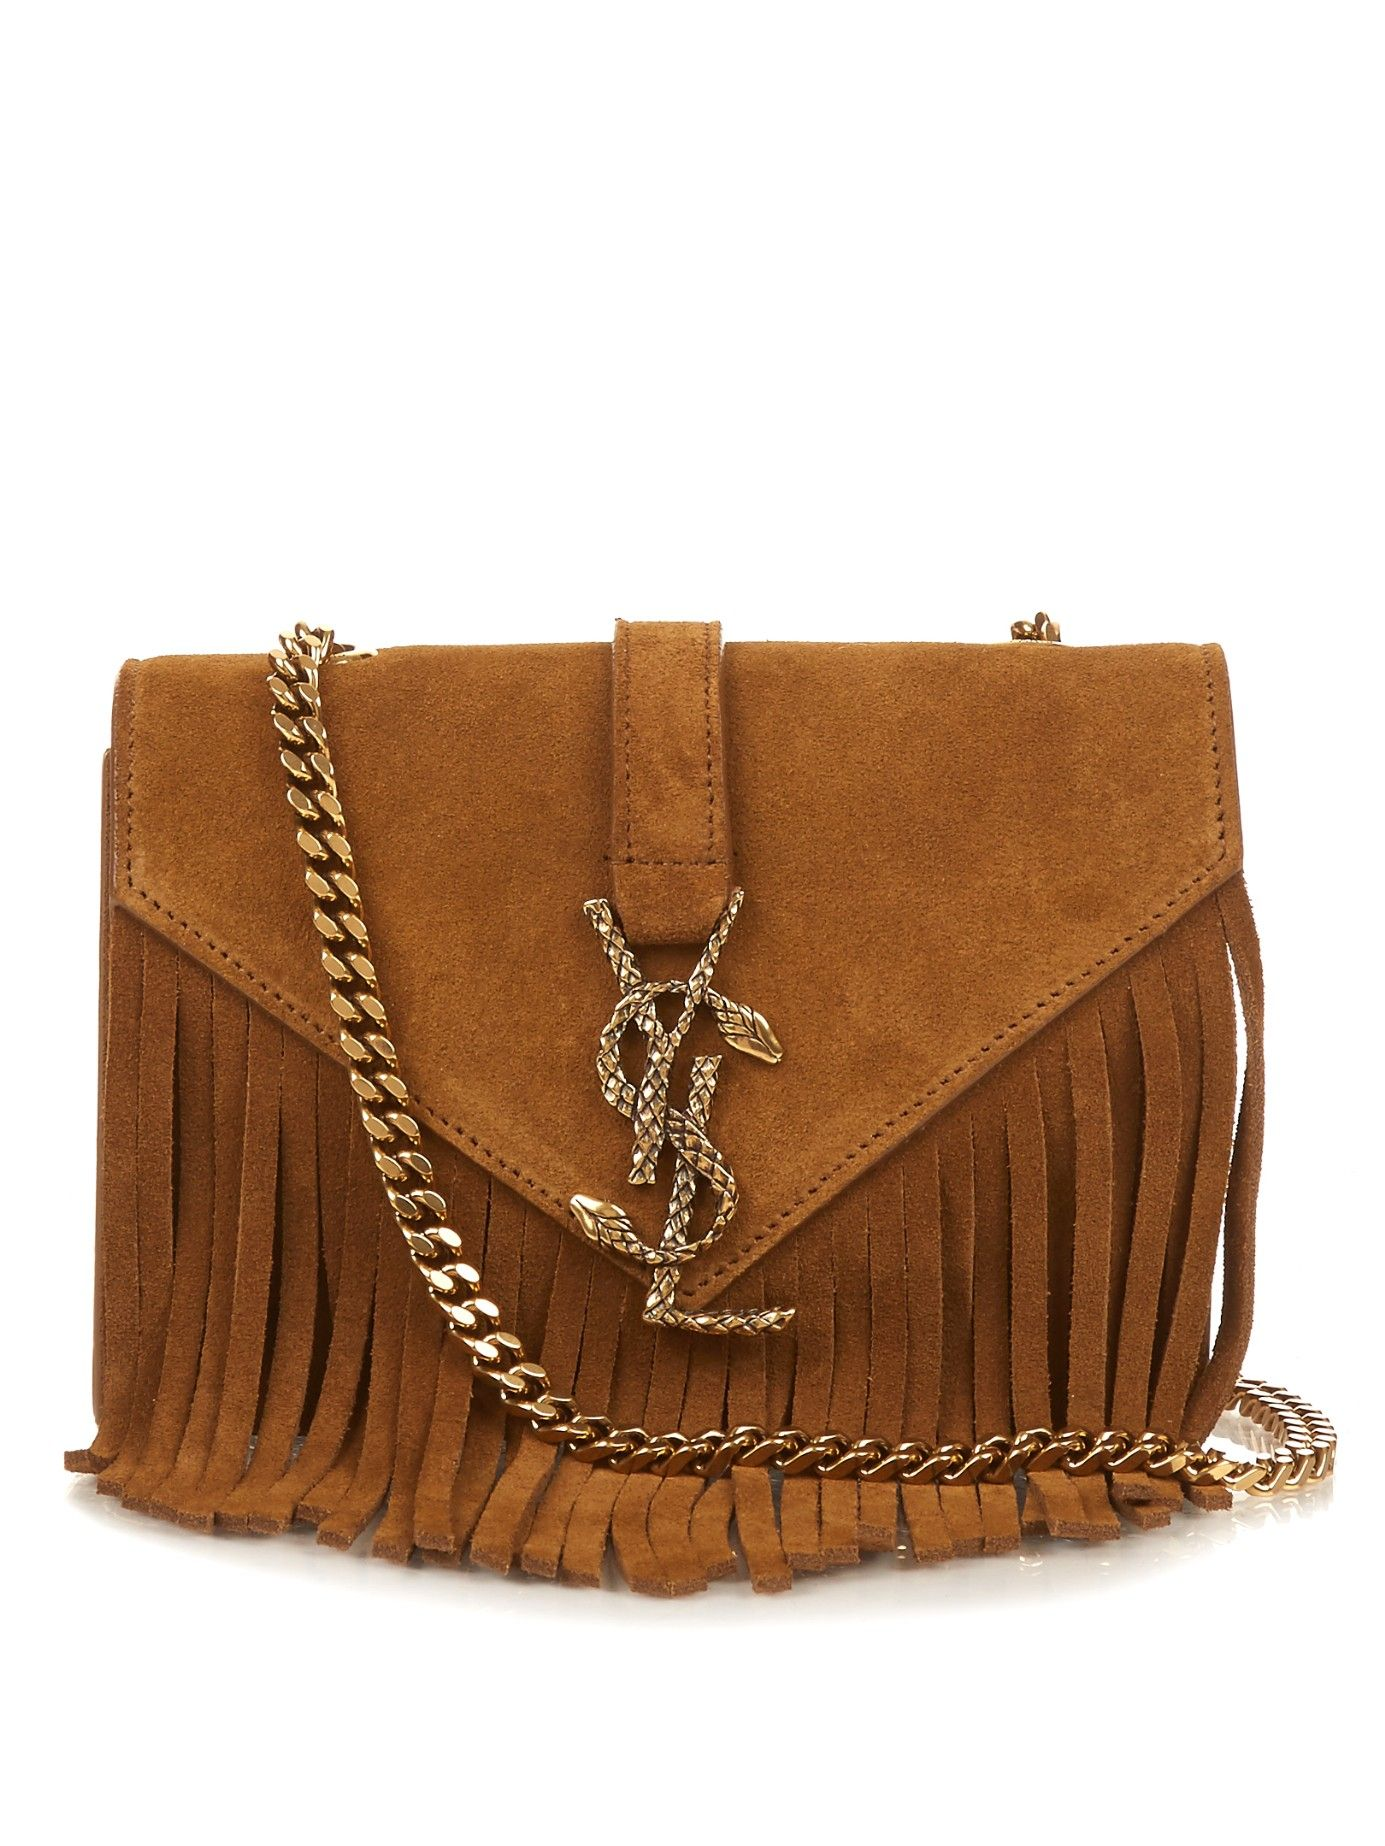 Monogram small fringed suede cross-body bag  d6549978f9049